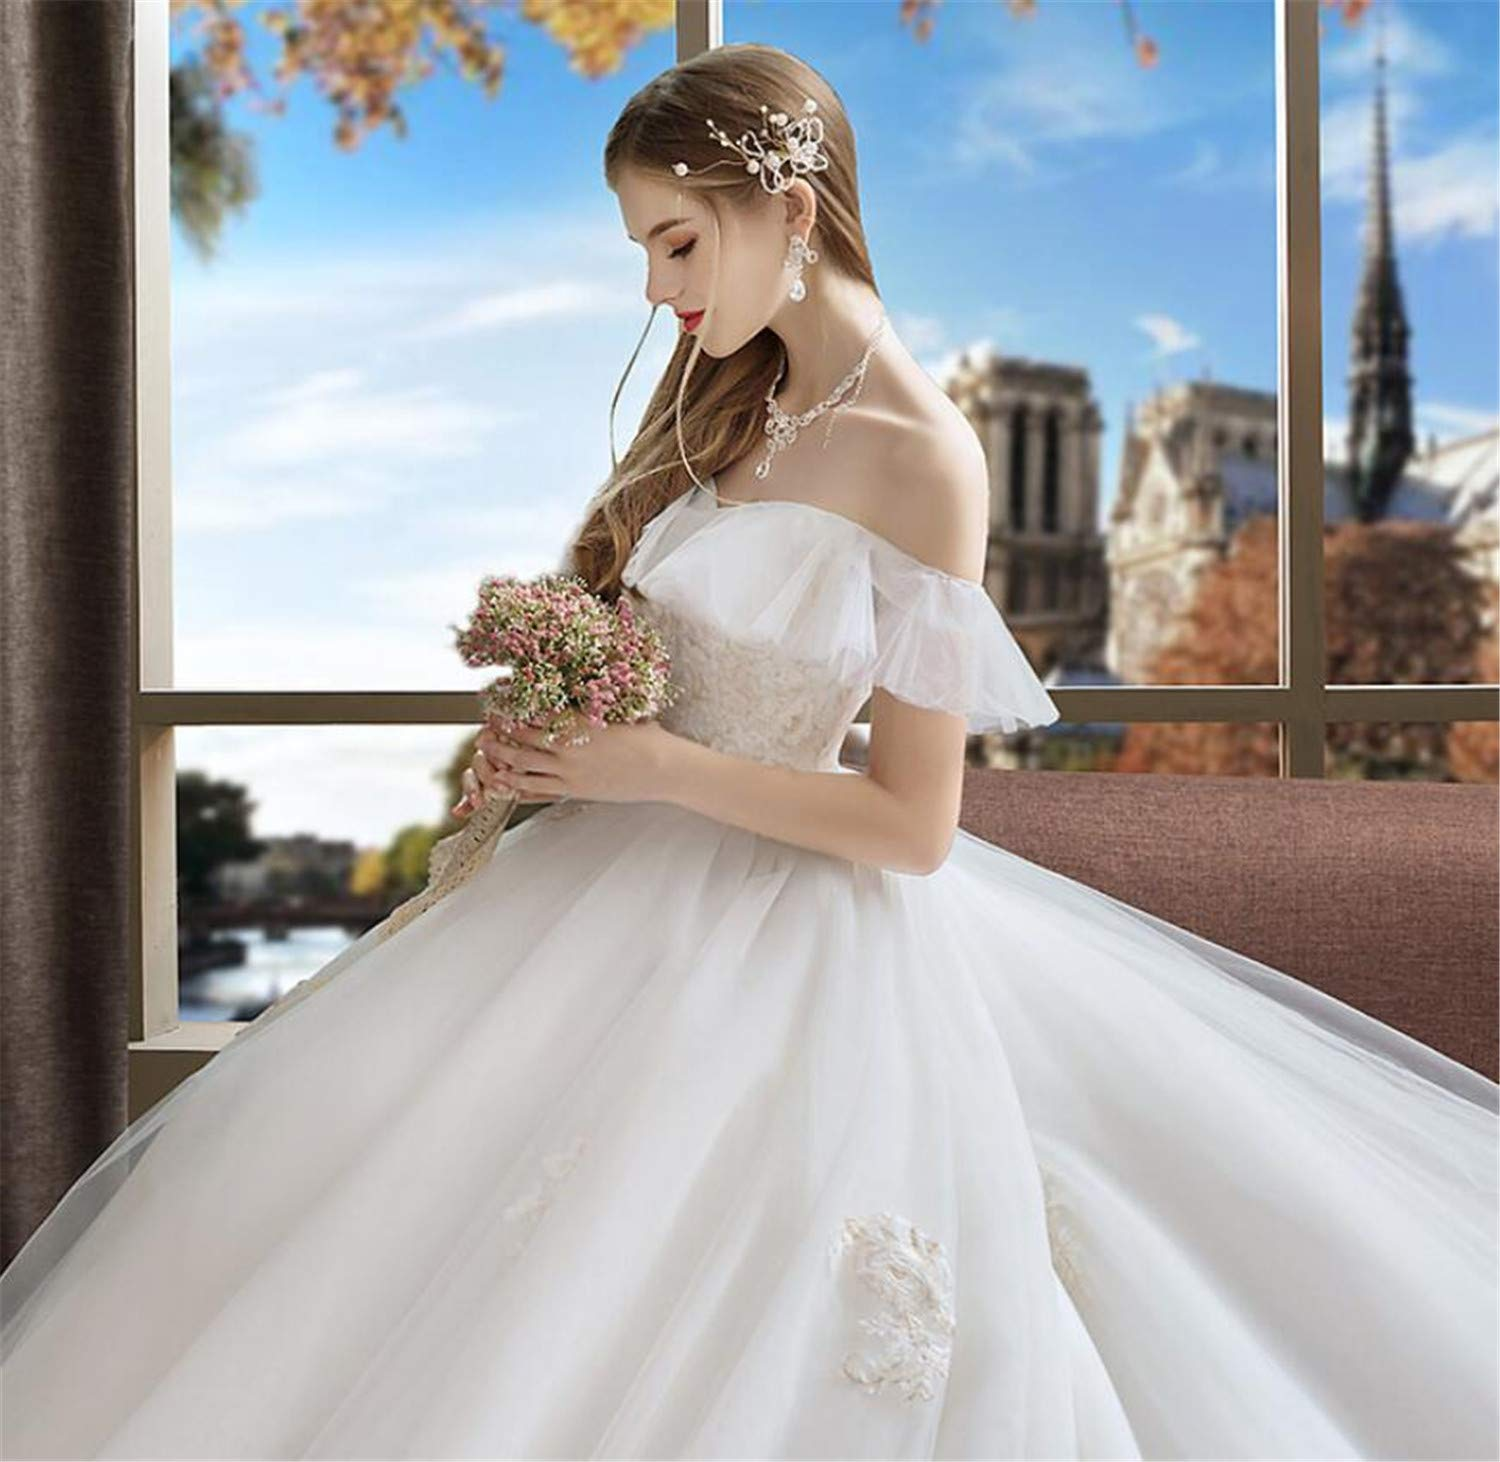 Wedding Dress, Princess Dream Lace Bride Trailing Wedding Dress Luxury High Waist Qi Pregnant Women Wedding Party Dress